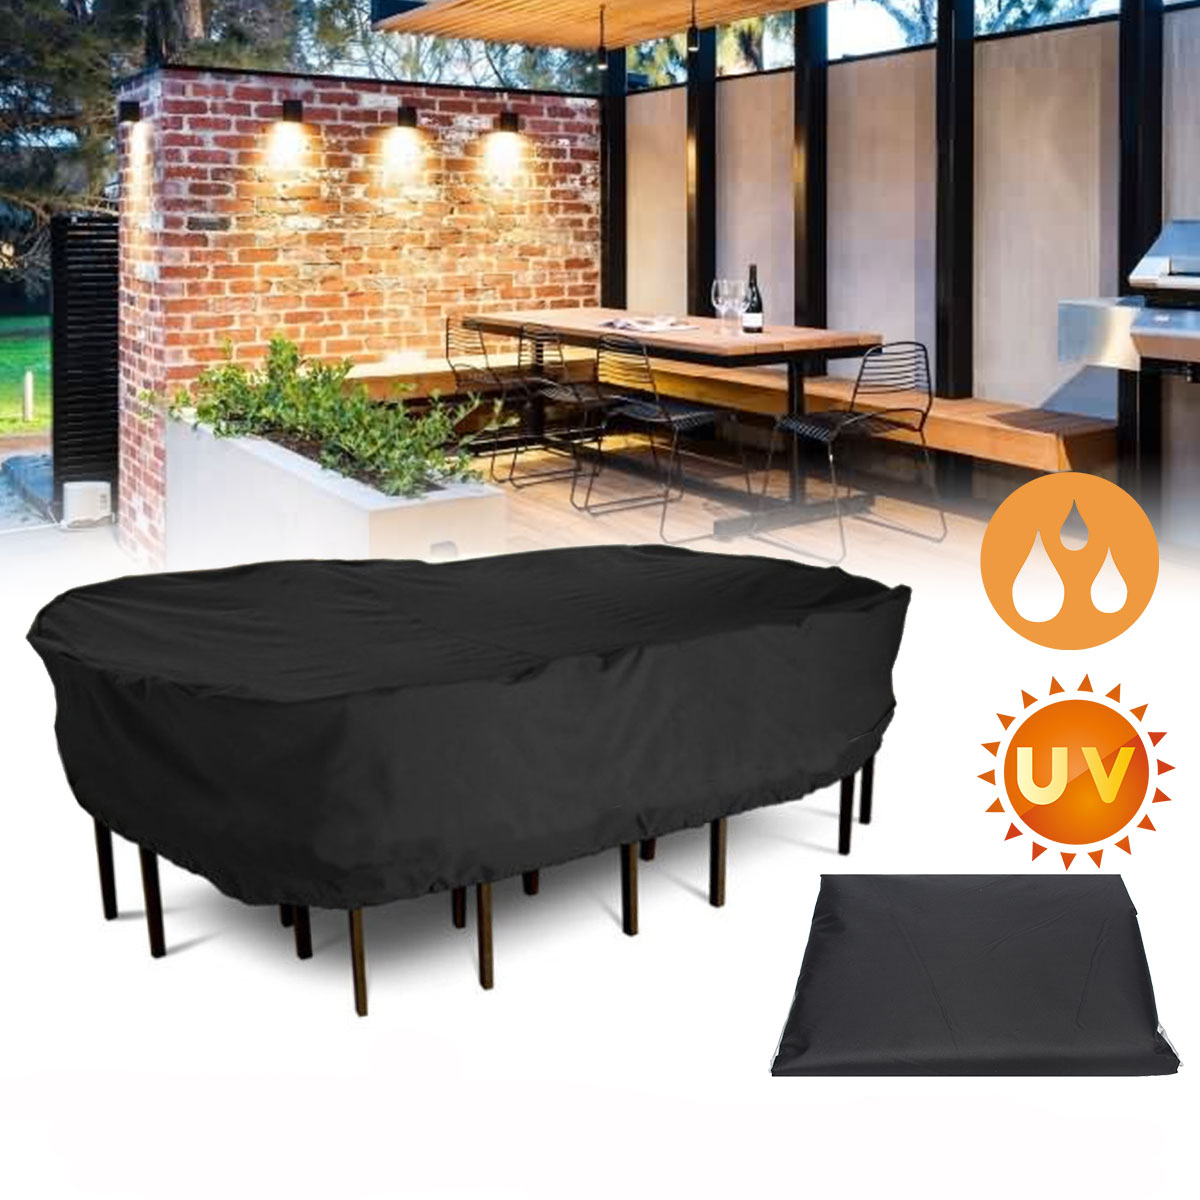 Garden Patio Furniture Winter Cover Waterproof Large Rectangular Table Chair Covers